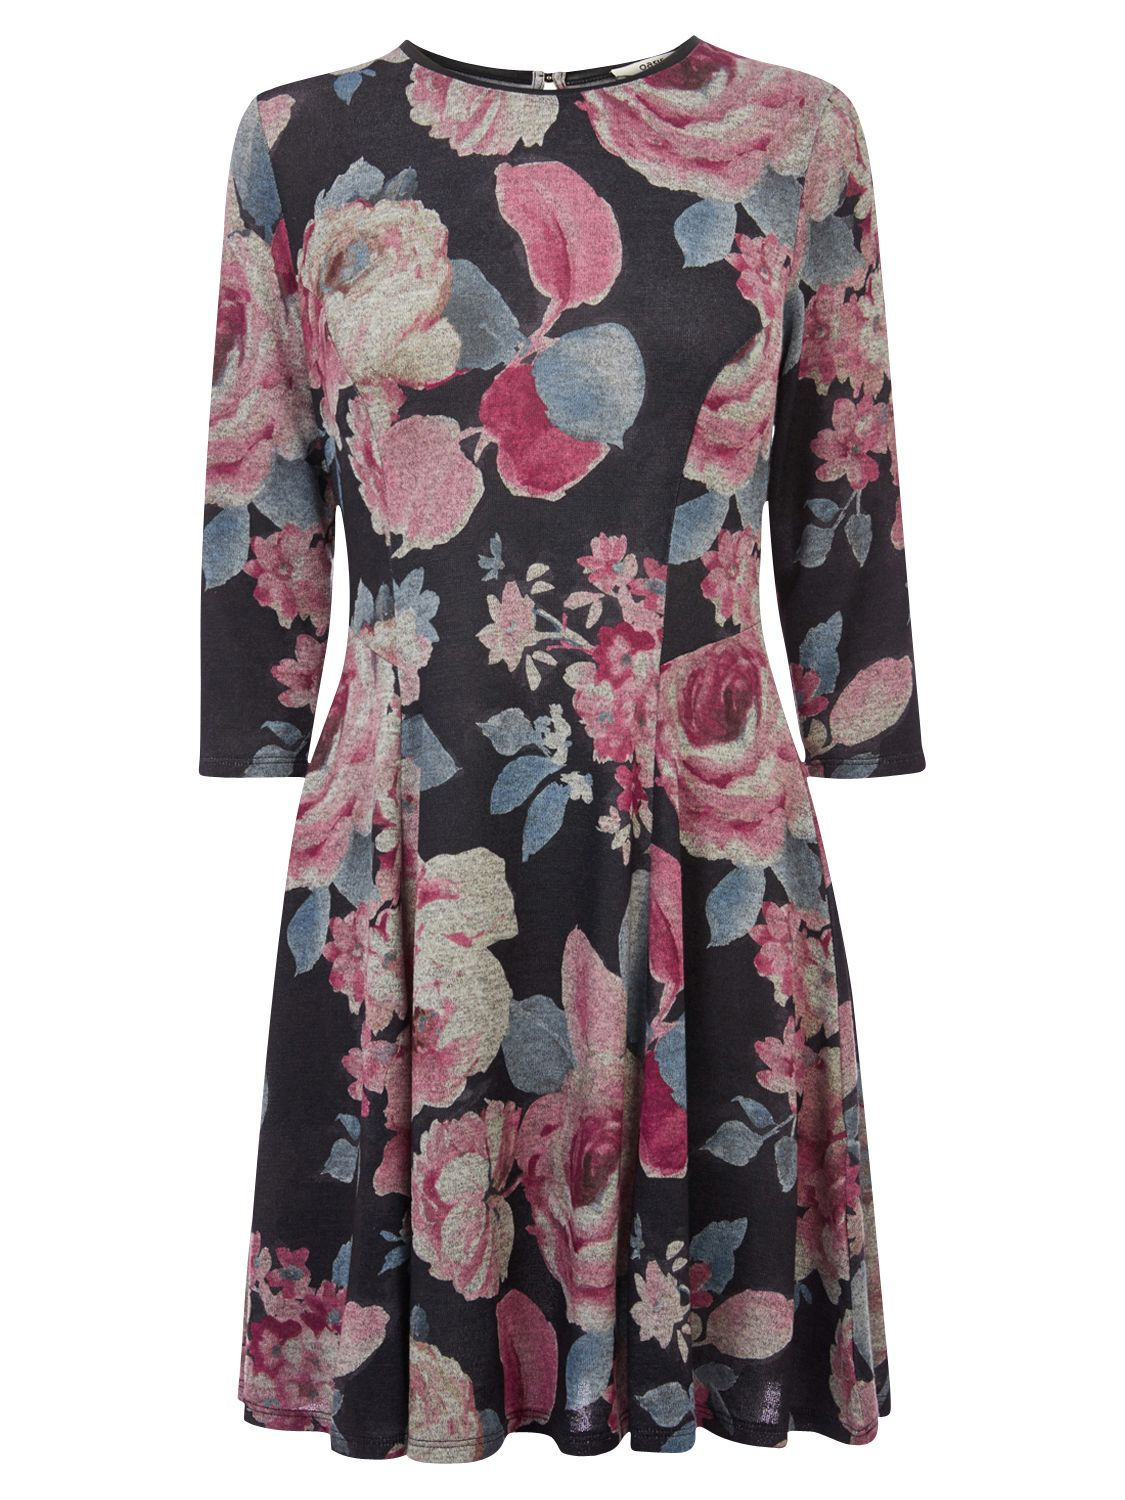 oasis oversized floral dress multi, oasis, oversized, floral, dress, multi, s|m|xs, special offers, womenswear offers, 30% off selected oasis, women, womens dresses, womens dresses offers, 1865860